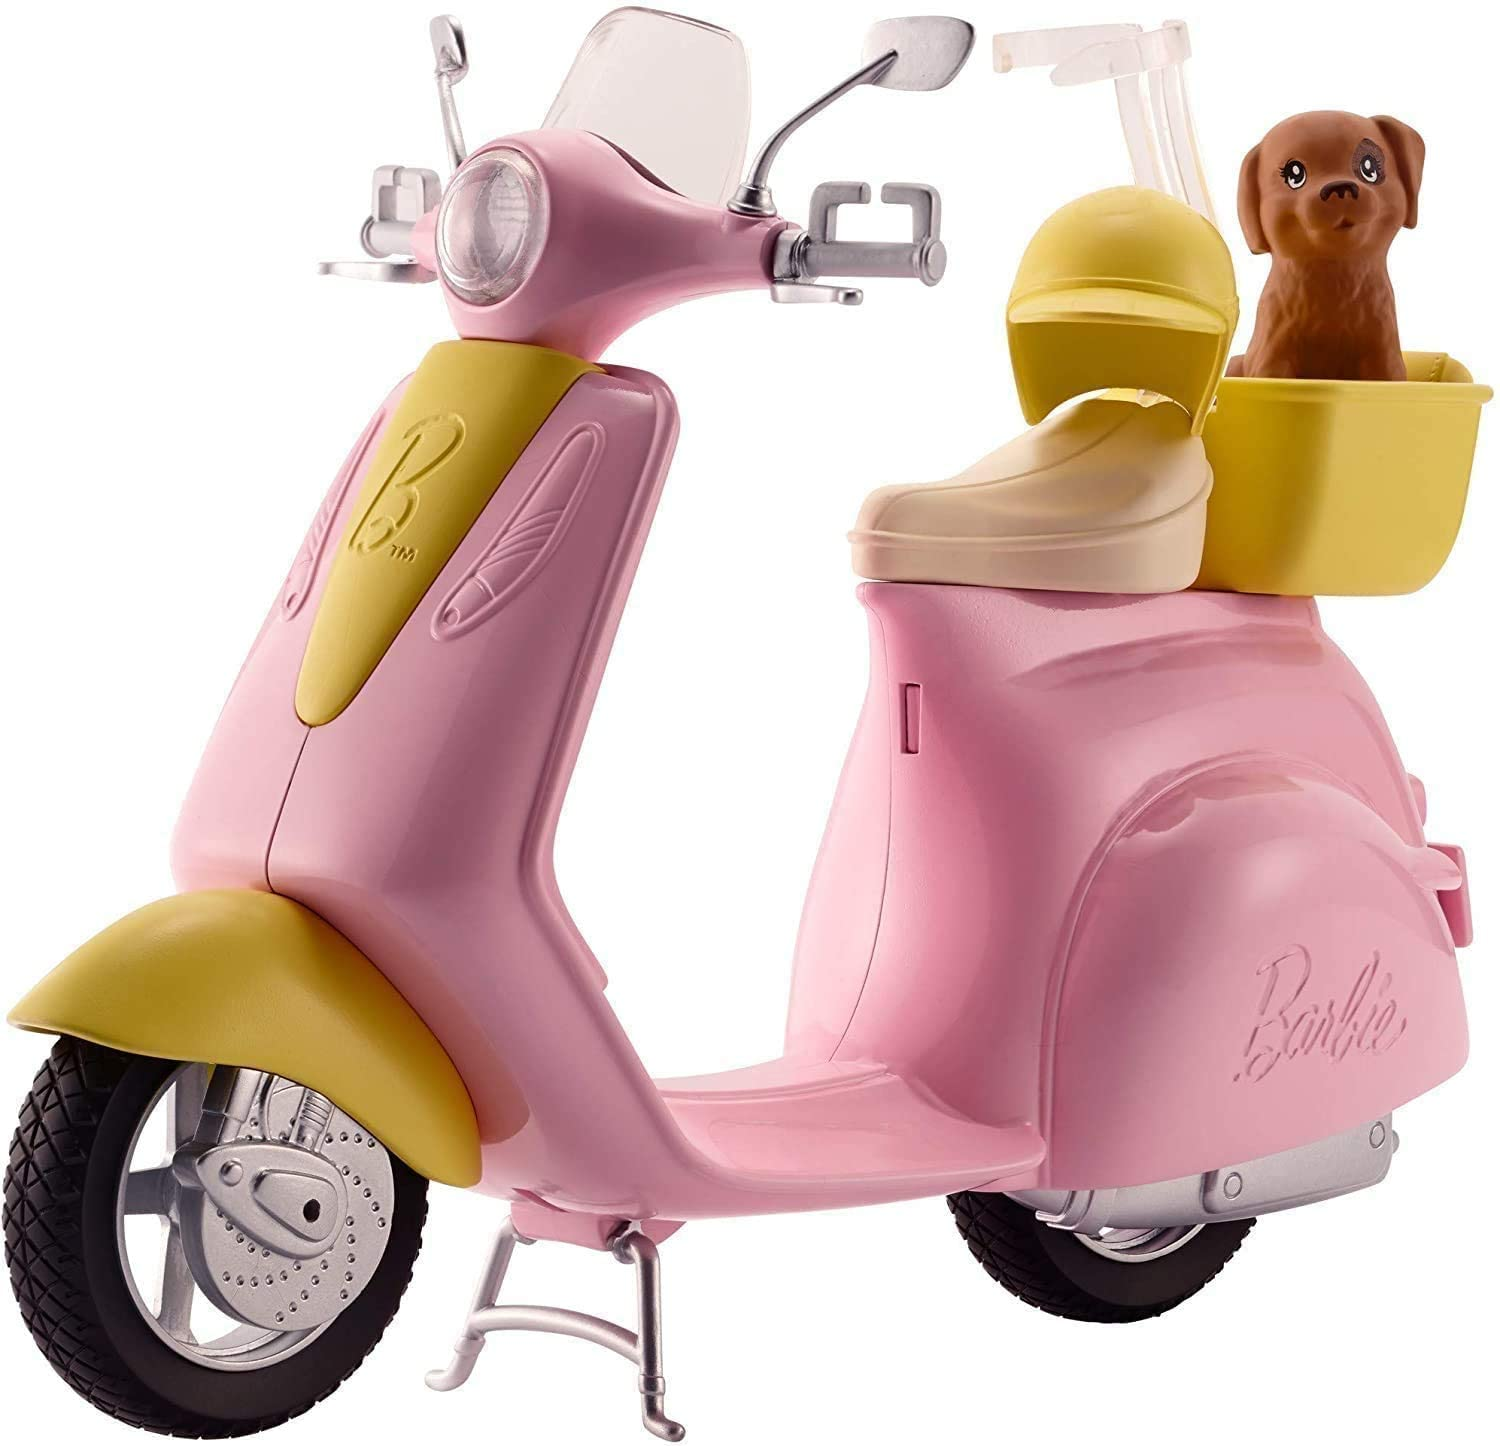 Barbie Scooter Vechile